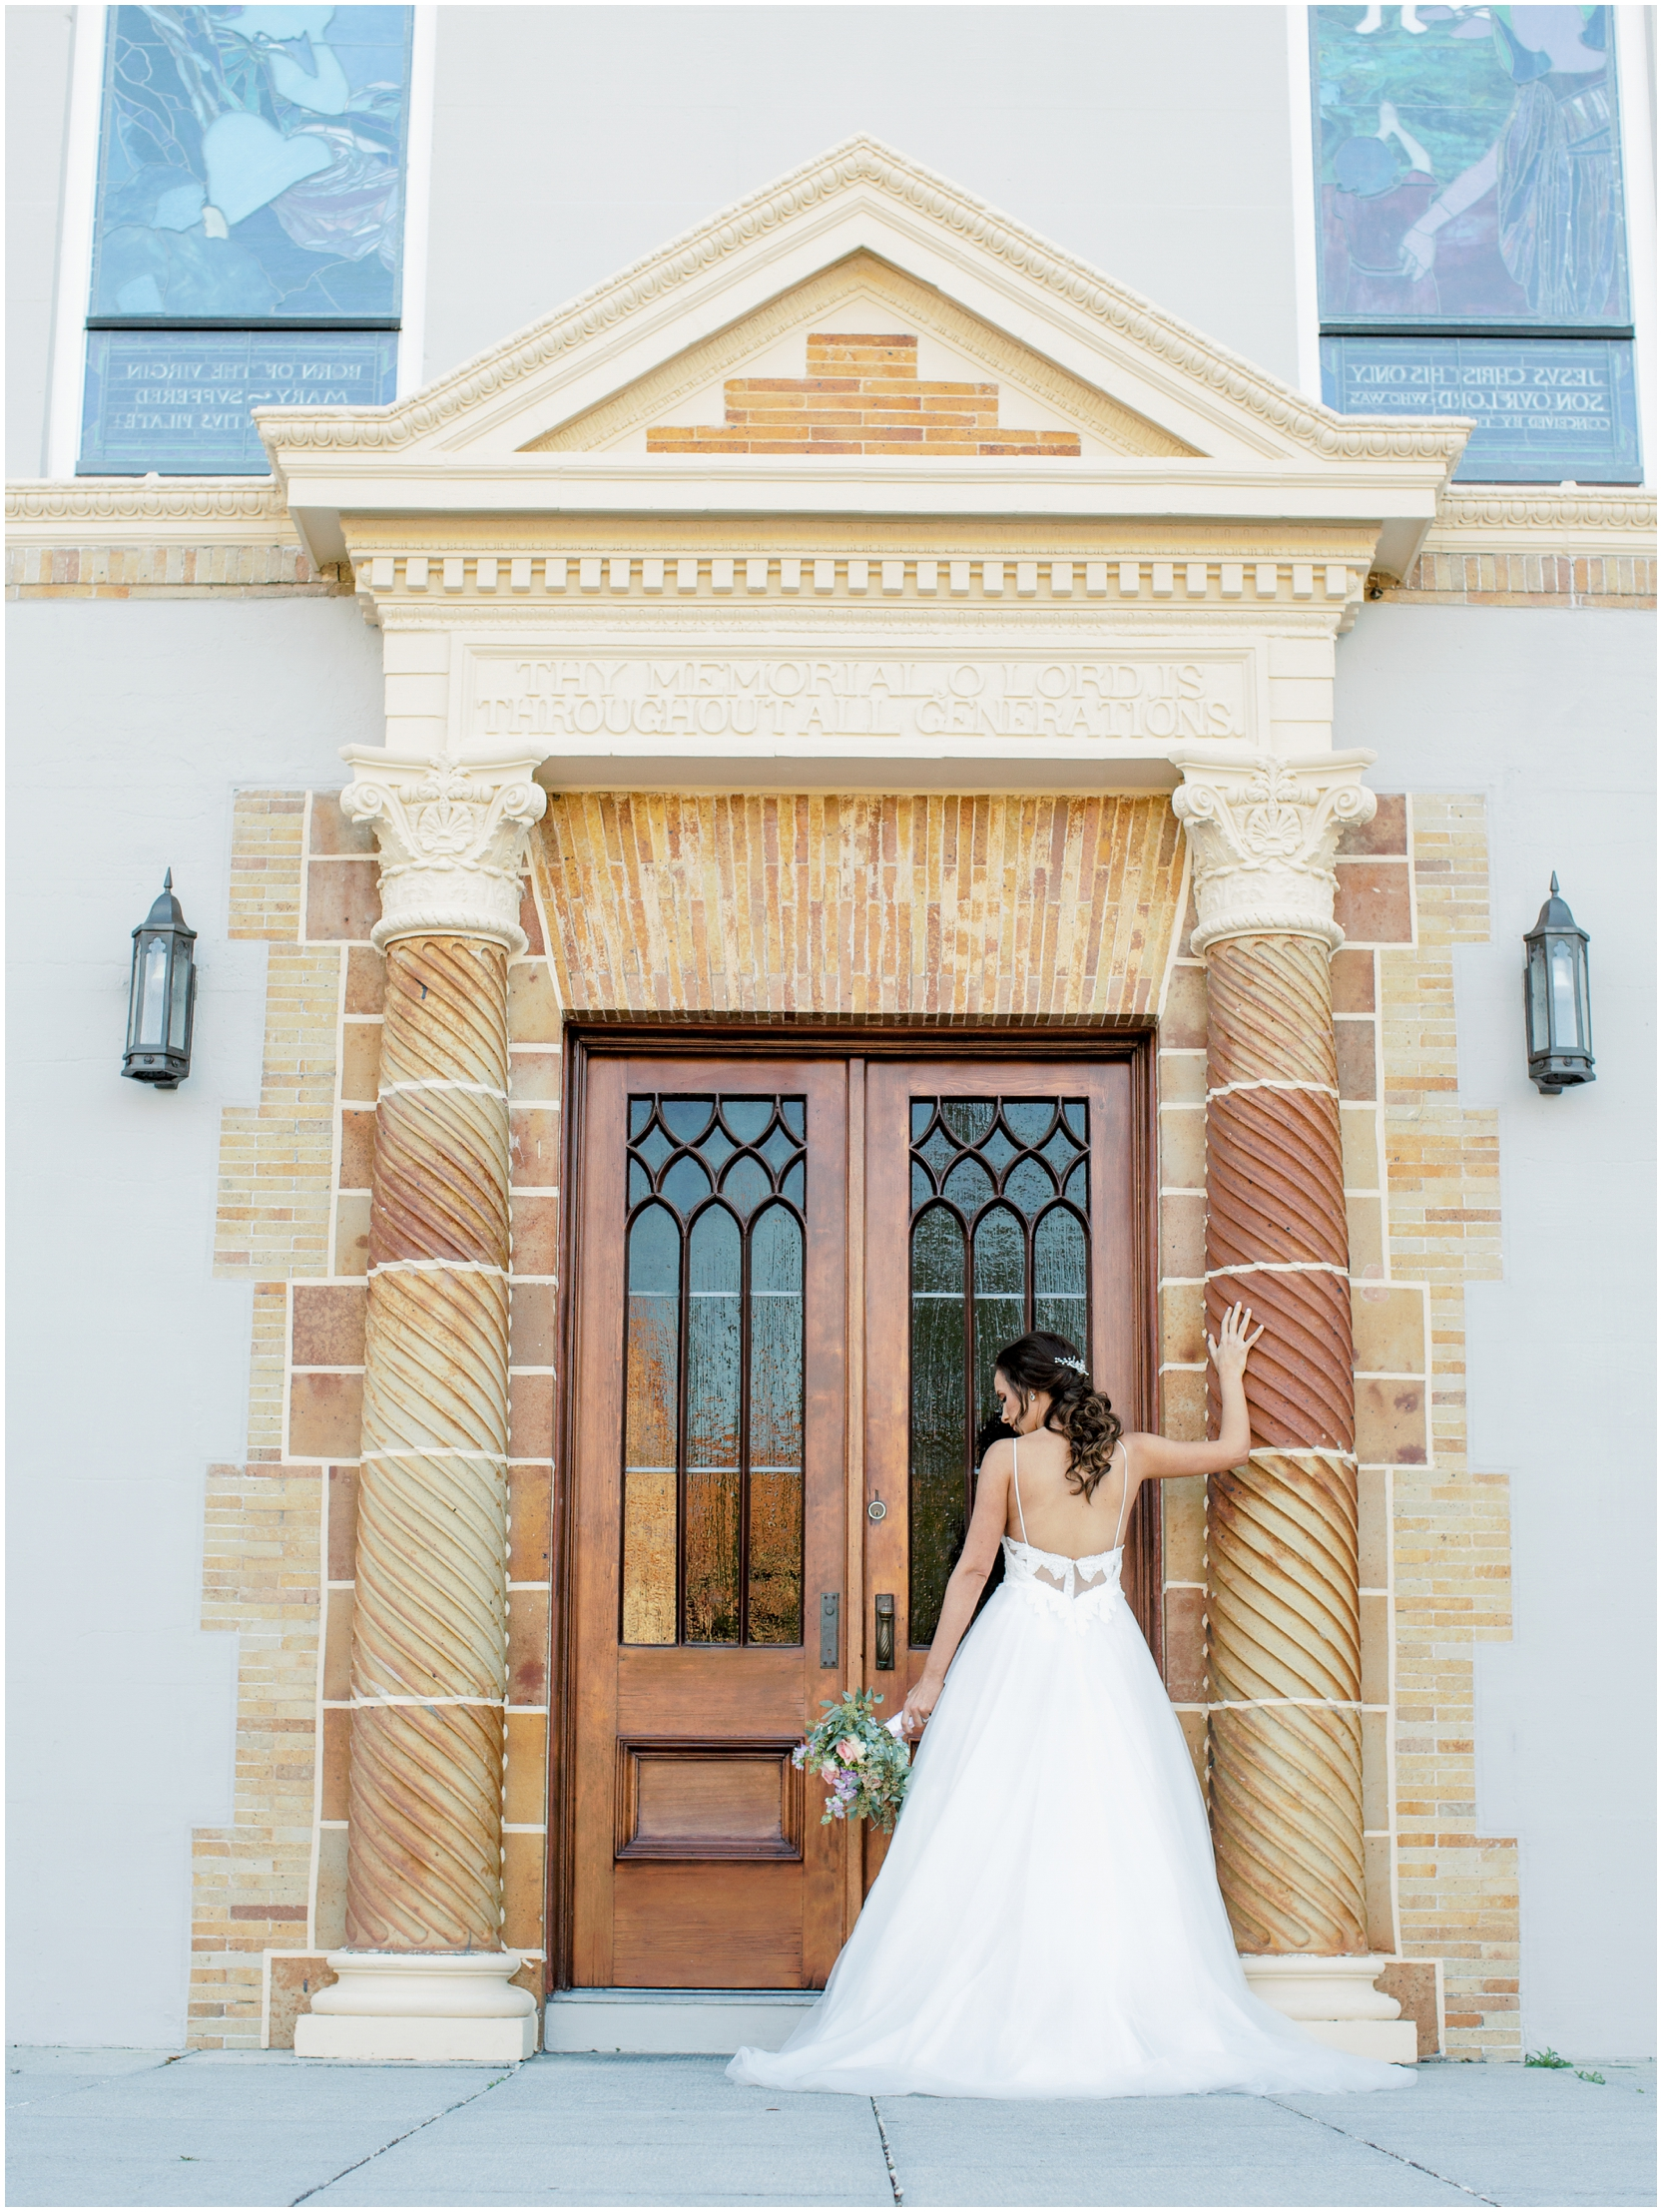 Lisa Silva Photography -Bridal Portrait Session in St. Augustine, Florida- Jacksonville and North East Florida Fine Art Film Photographer_0000.jpg